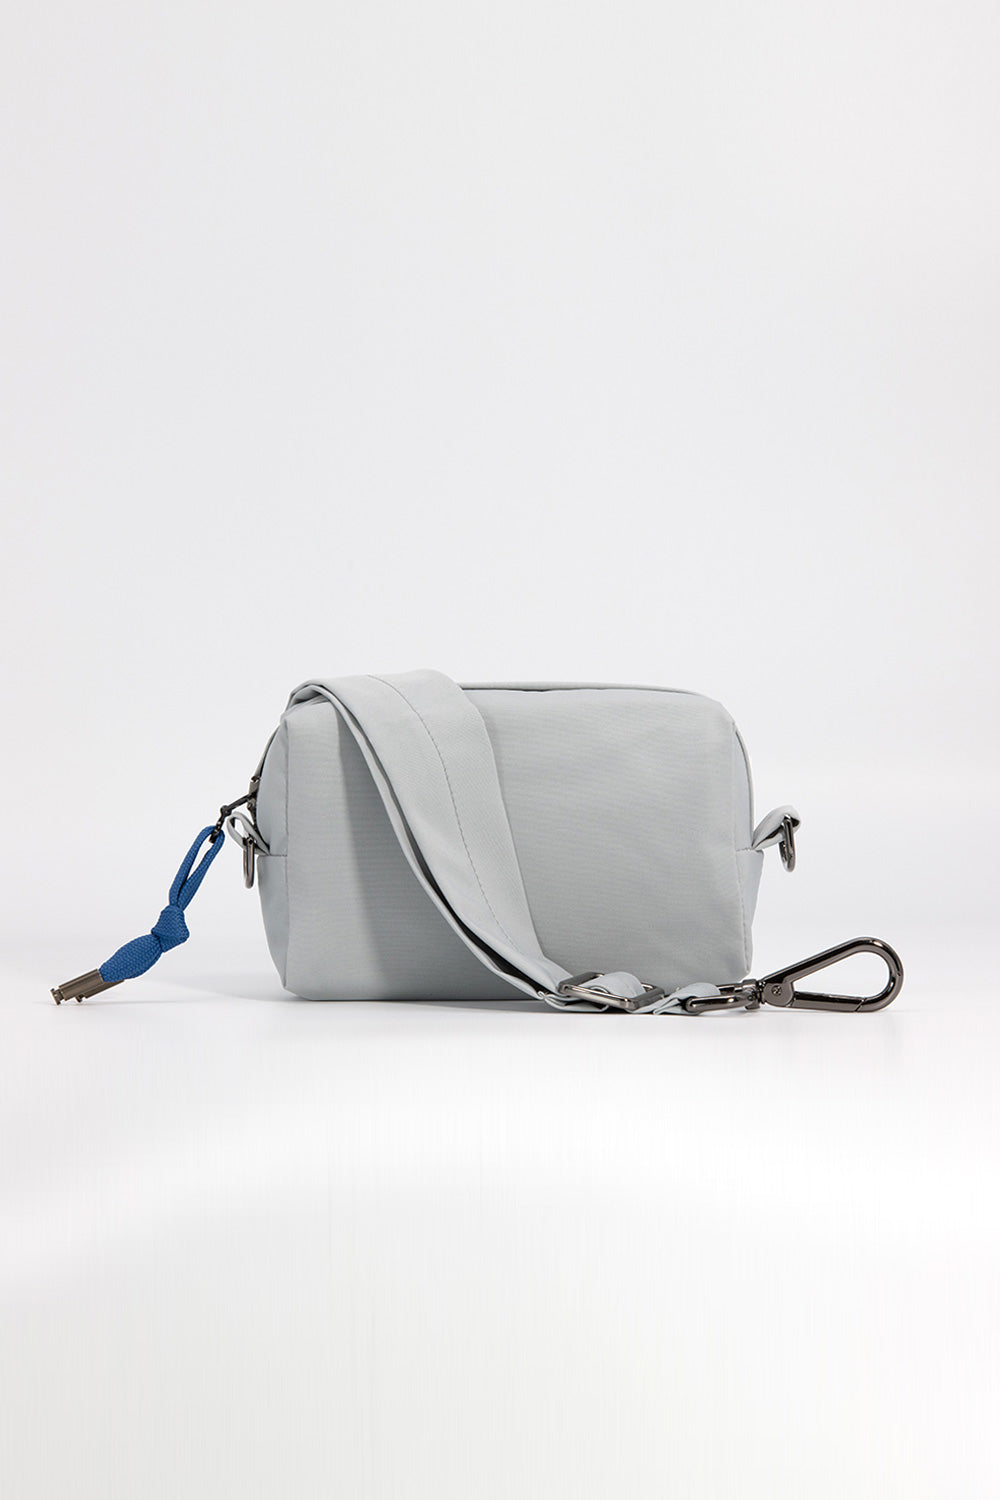 Travel Pouch SAMPLE Parisian Grey